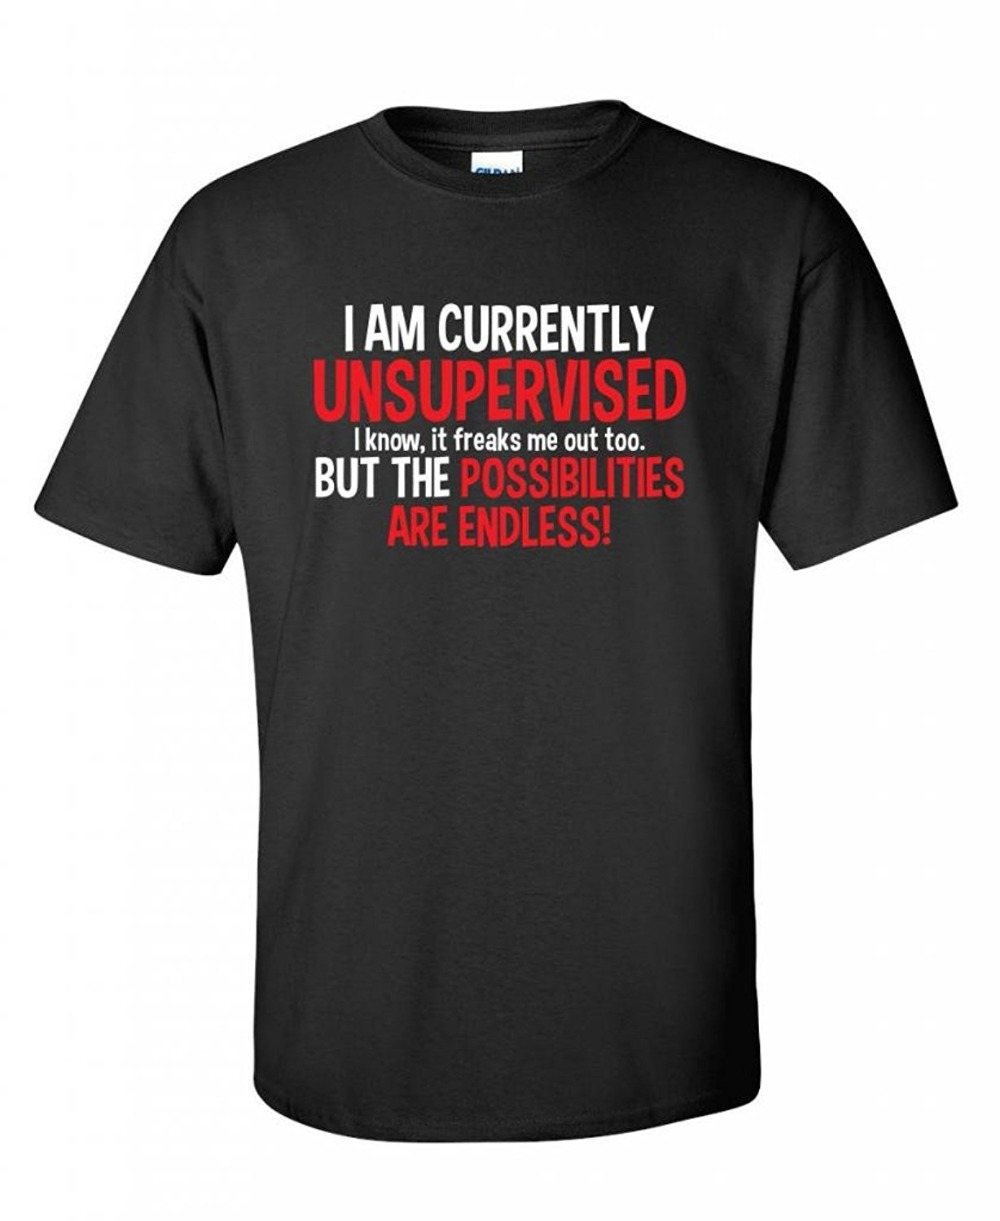 2018 Streetwear Short Sleeve Tees I Am Currently Unsupervised Adult Humor Novelty Graphic Sarcasm Funny T Shir T-Shirt men t shi